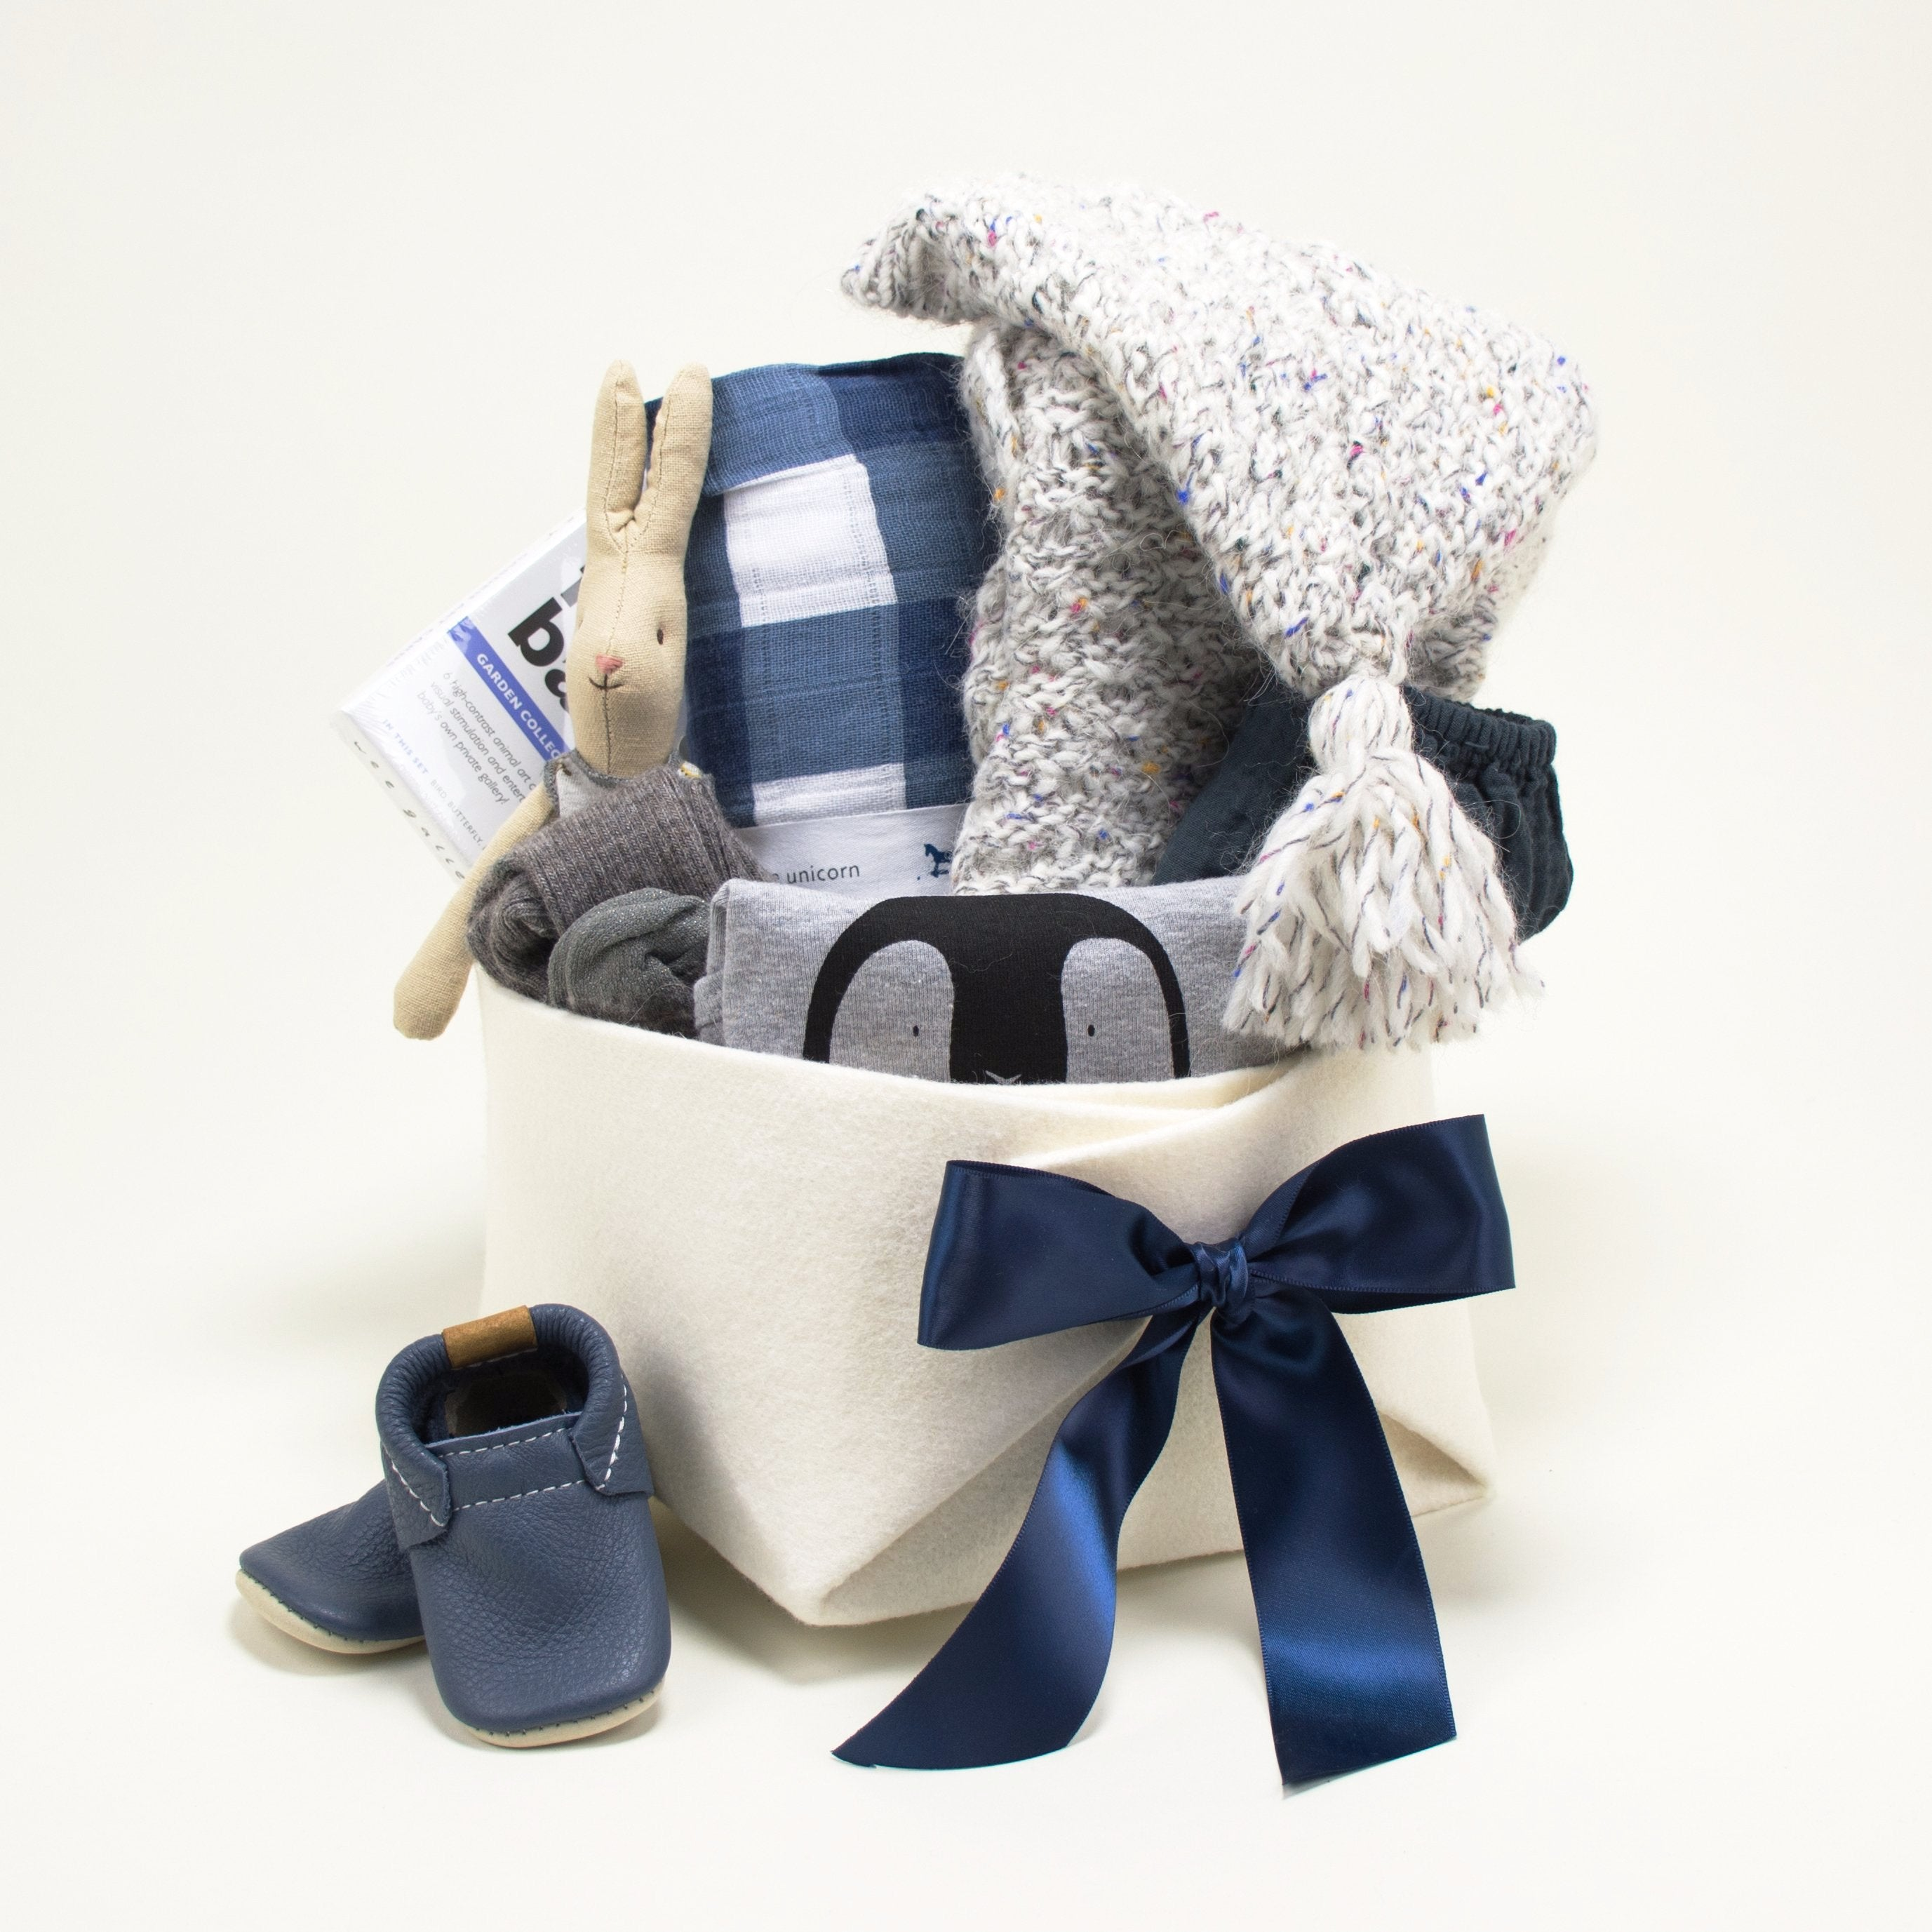 Luxury Baby Gift Basket featuring Buho Barcelona